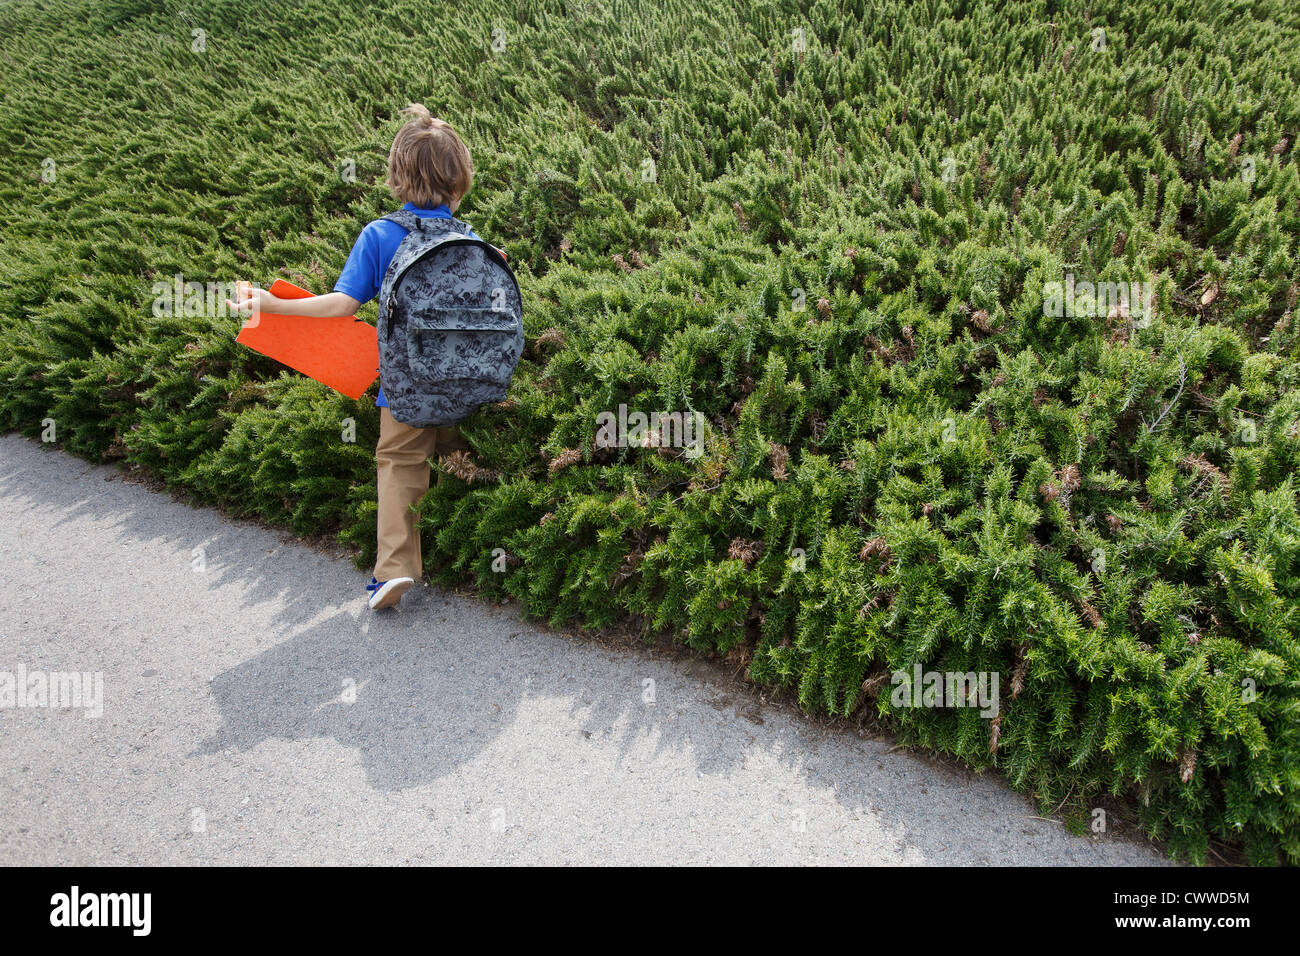 Boy walking by shrubs outdoors - Stock Image